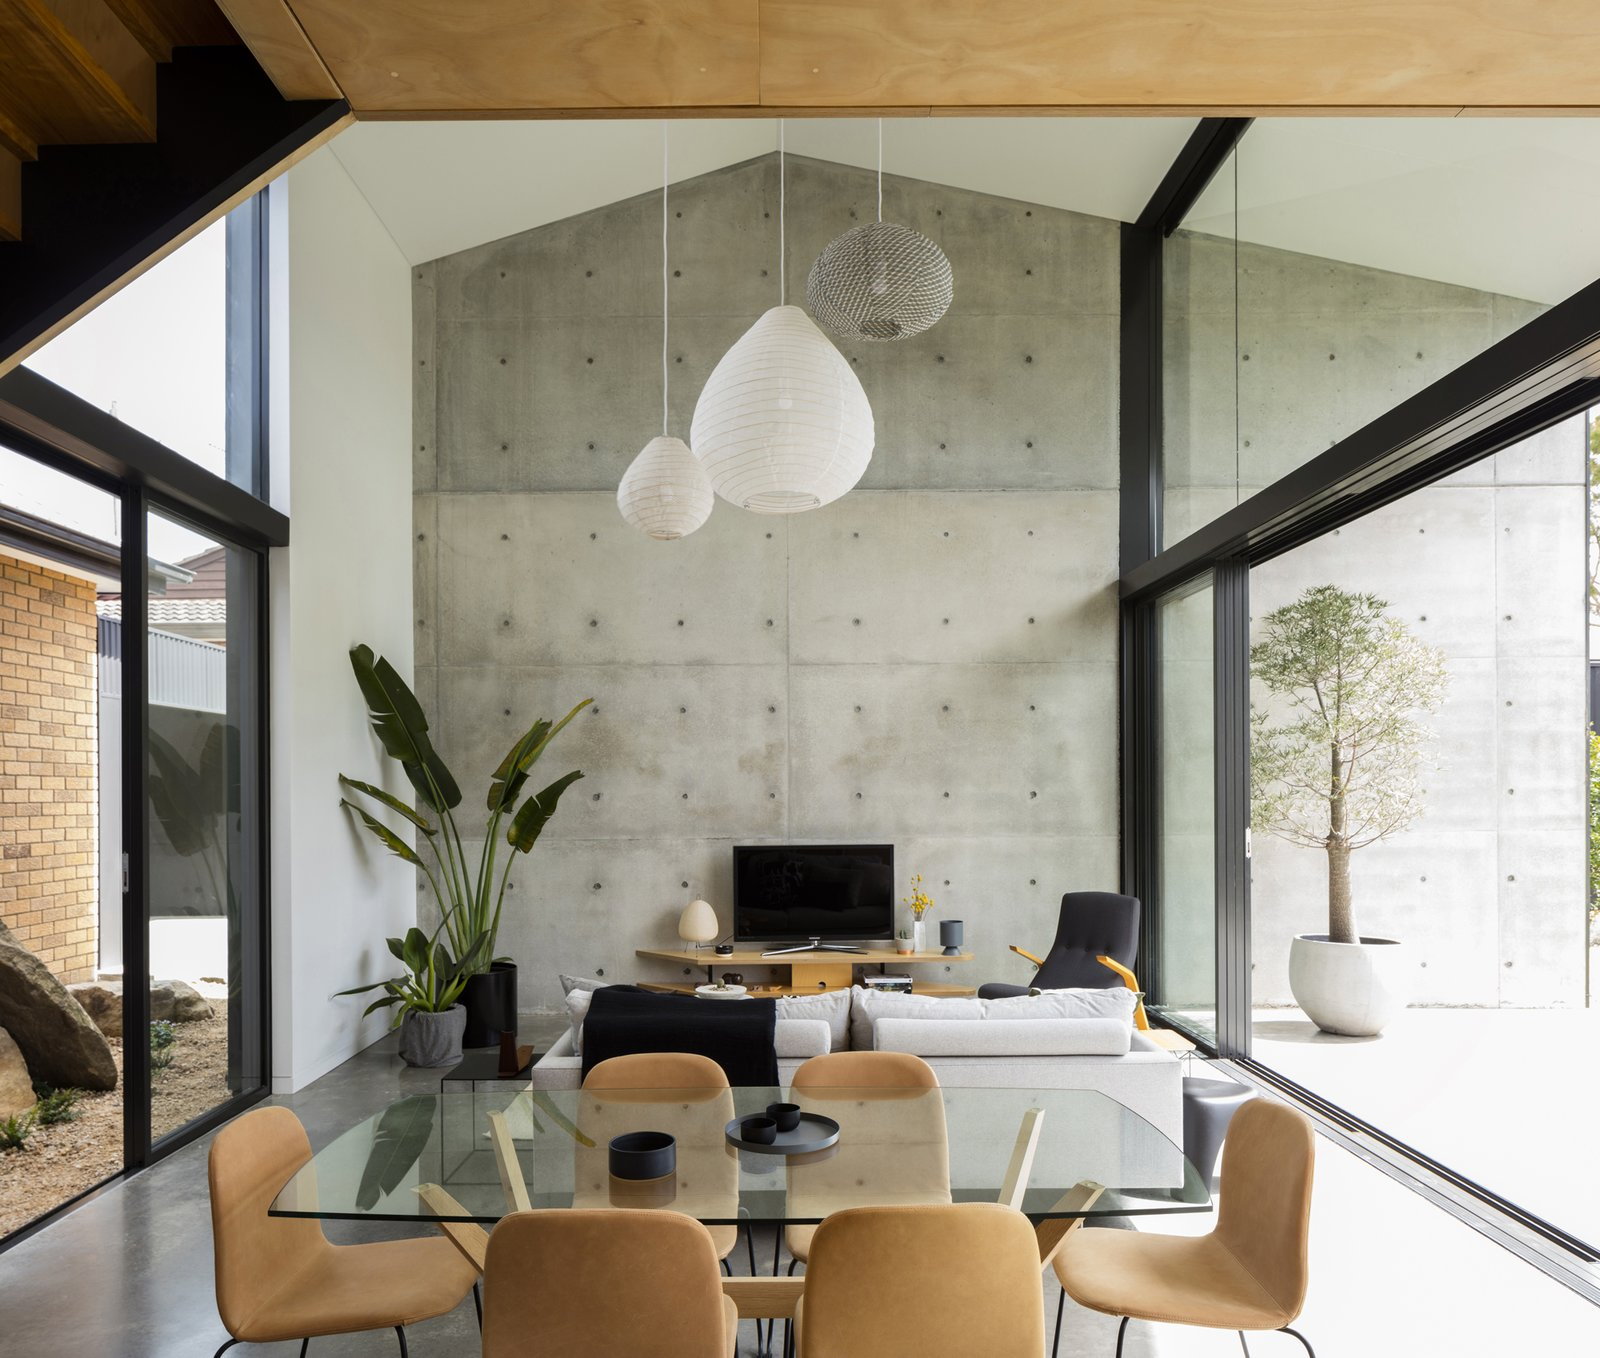 Living, Concrete, Chair, Pendant, End Tables, Shelves, Sofa, and Table Overall living area with dual aspects and connections to an interstitial garden court and rear landscaped yard beyond its concrete terrace  Best Living Concrete Pendant Photos from Binary House